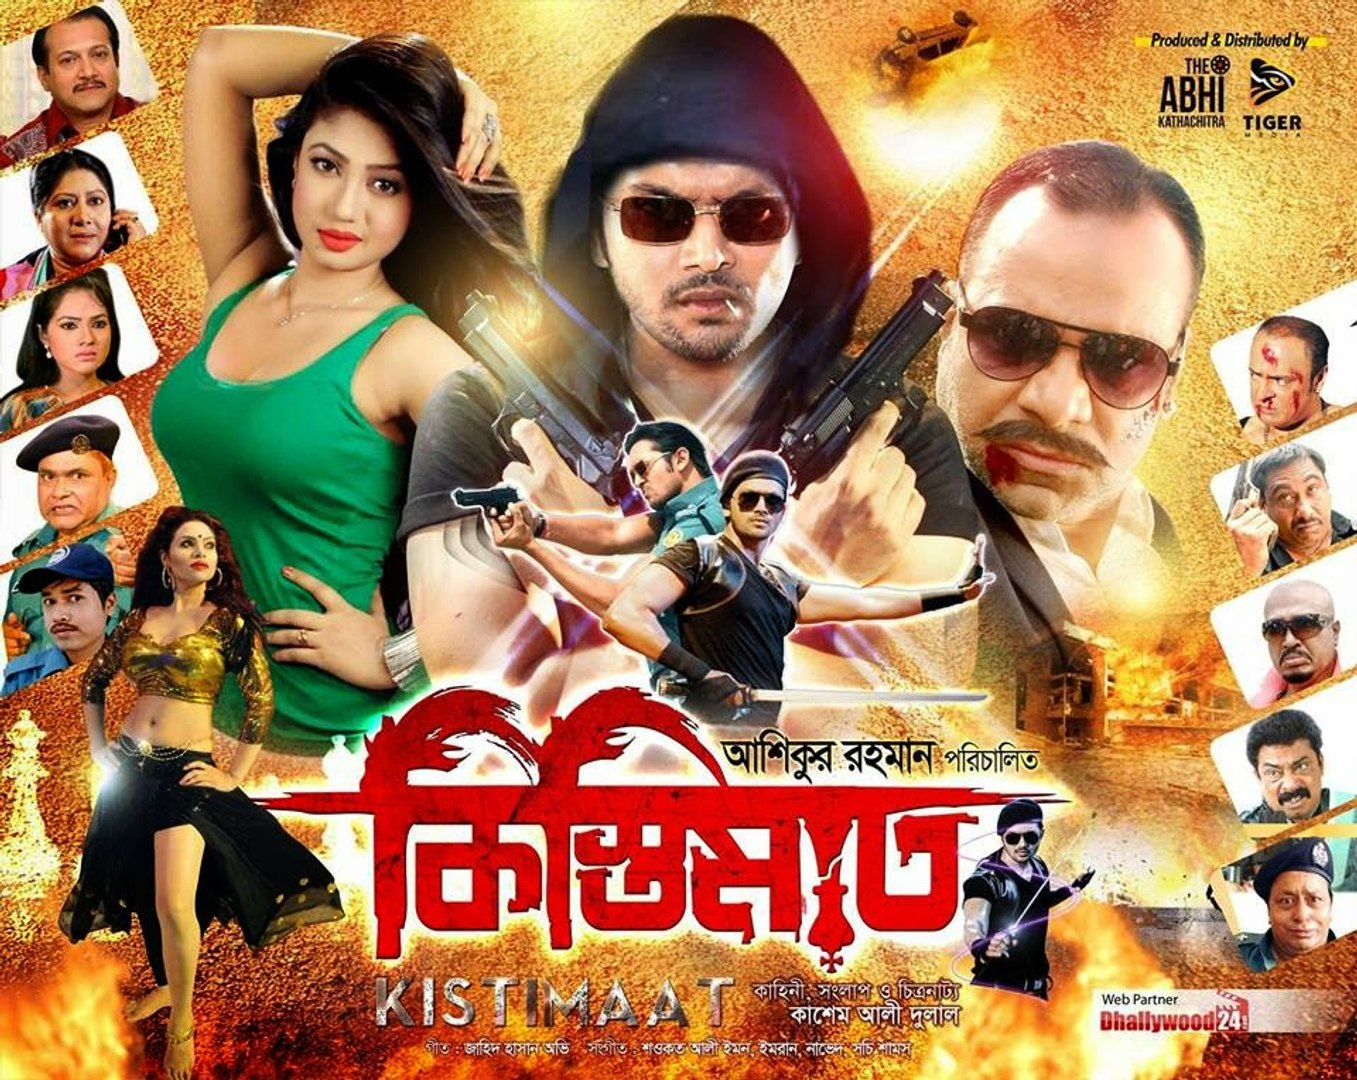 Kistimaat (2014) Bengali Movie 720p